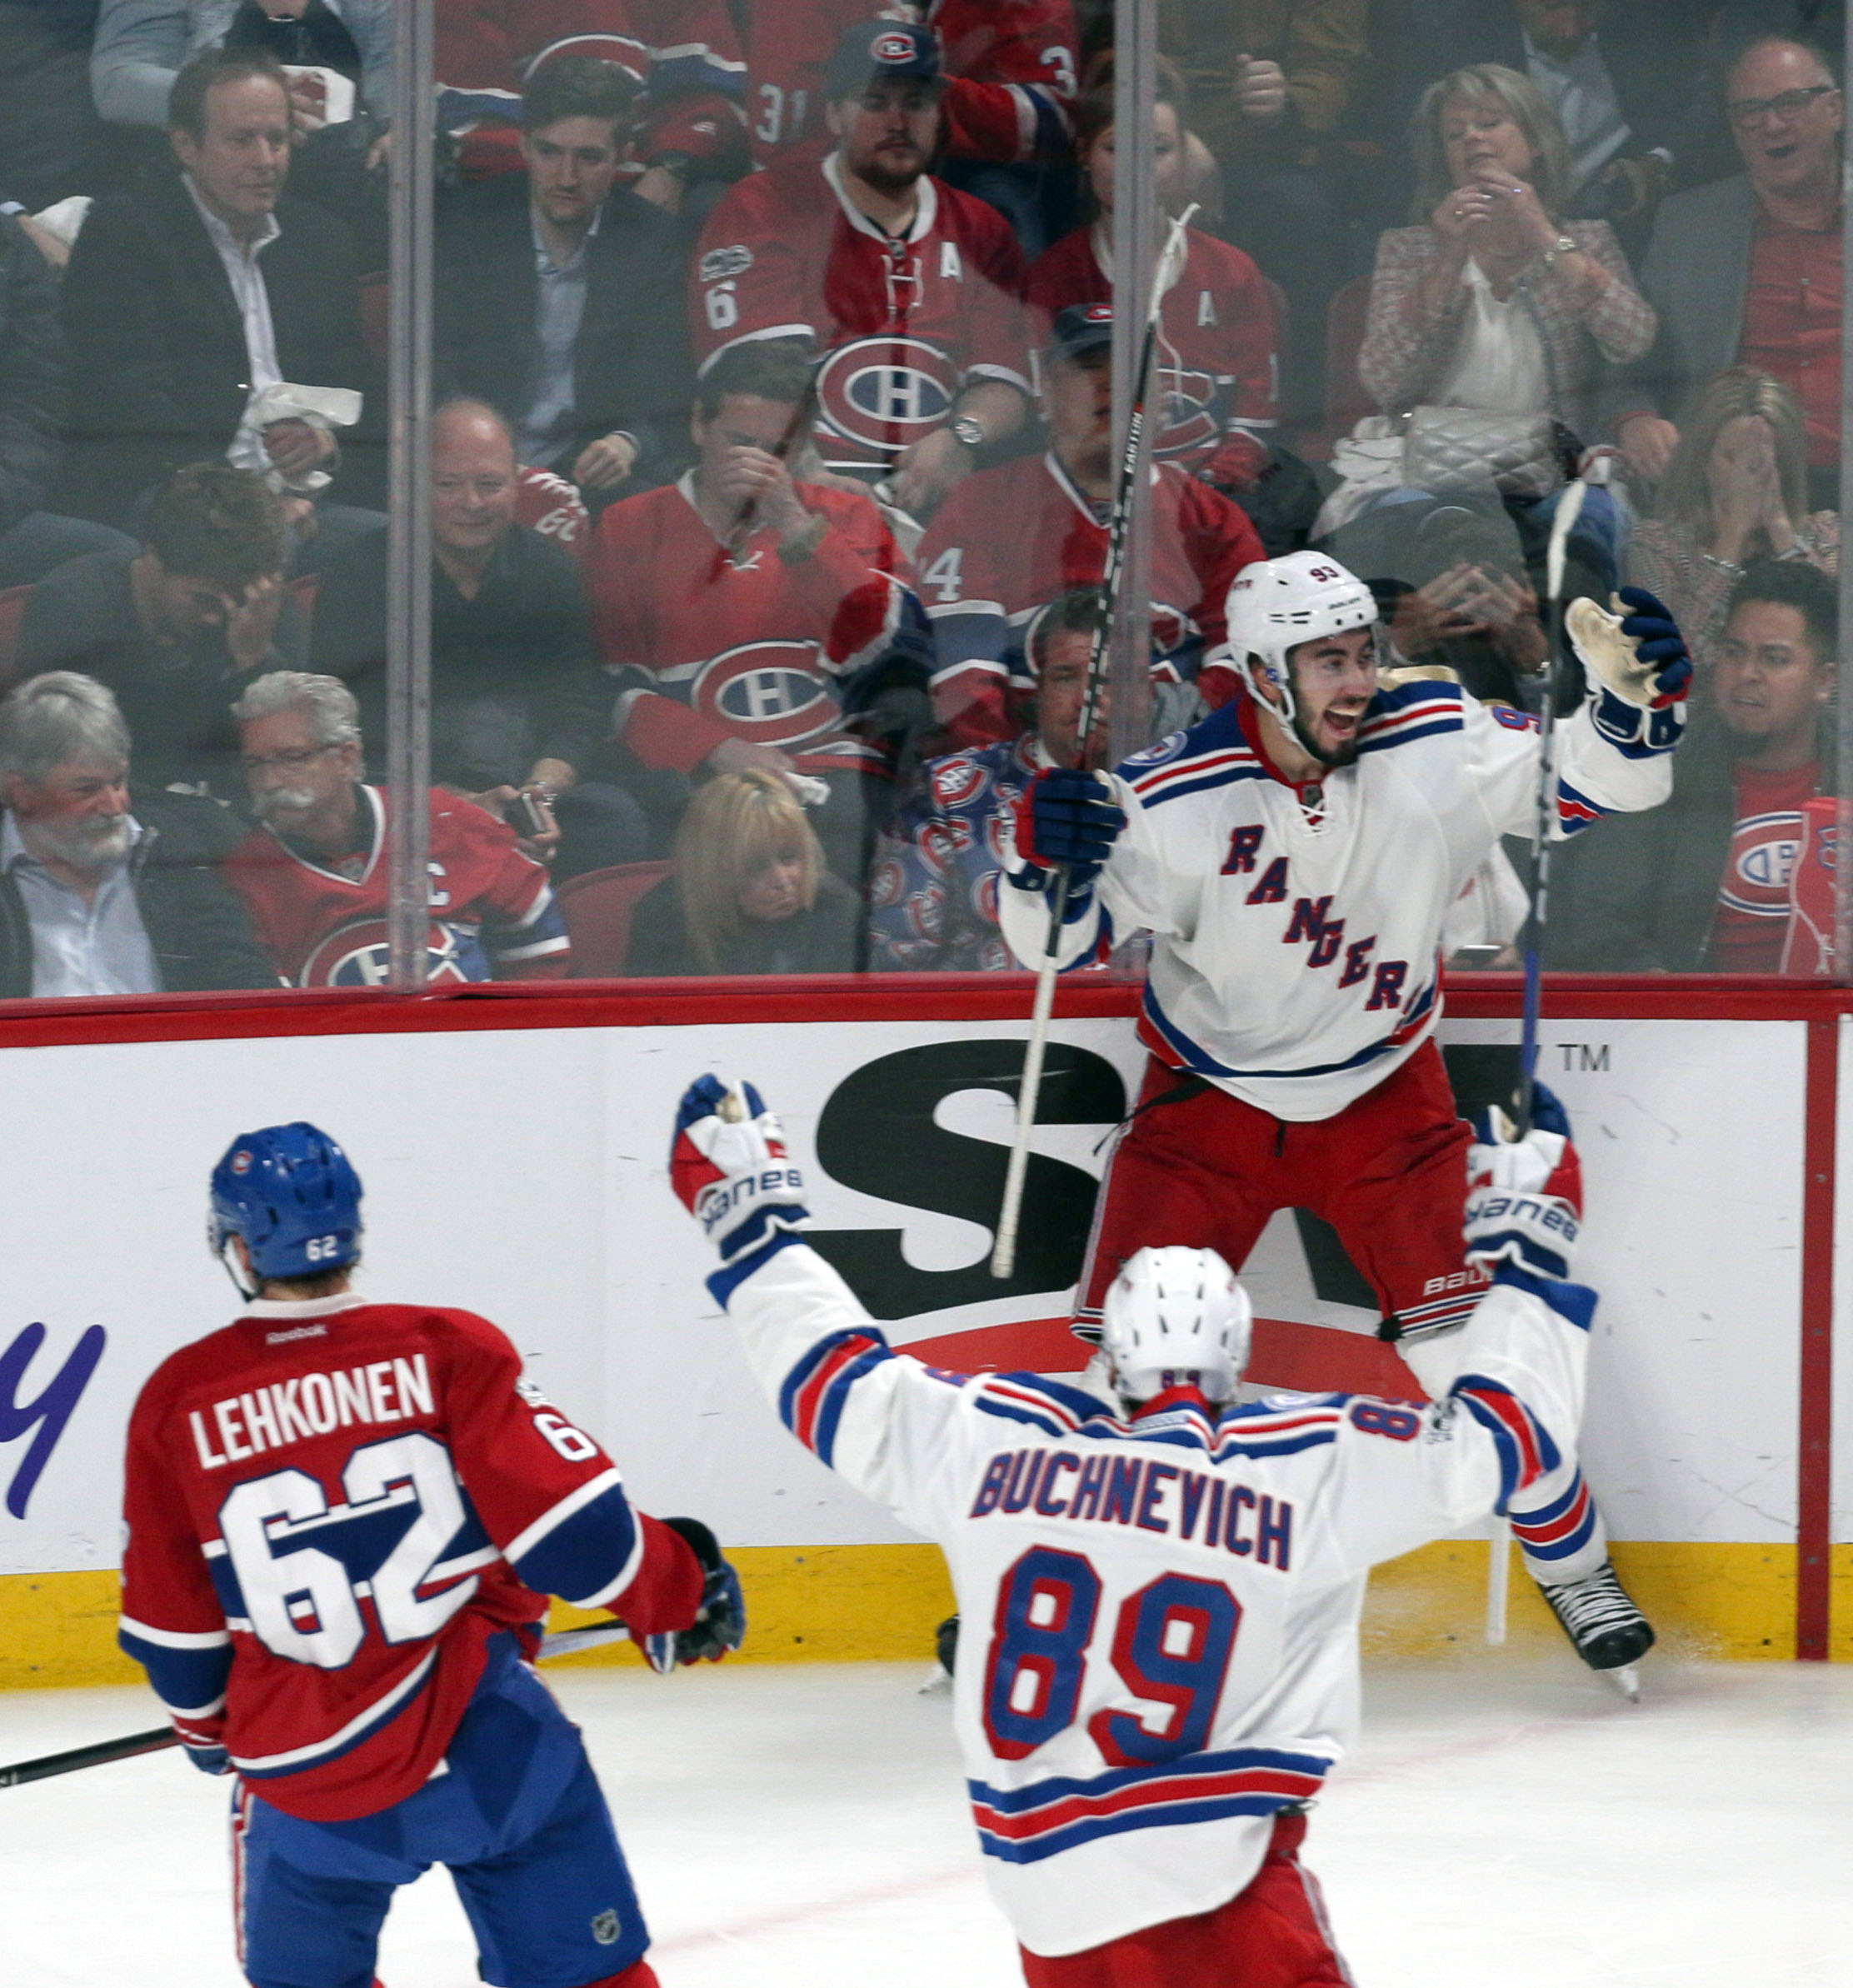 10022768-nhl-stanley-cup-playoffs-new-york-rangers-at-montreal-canadiens